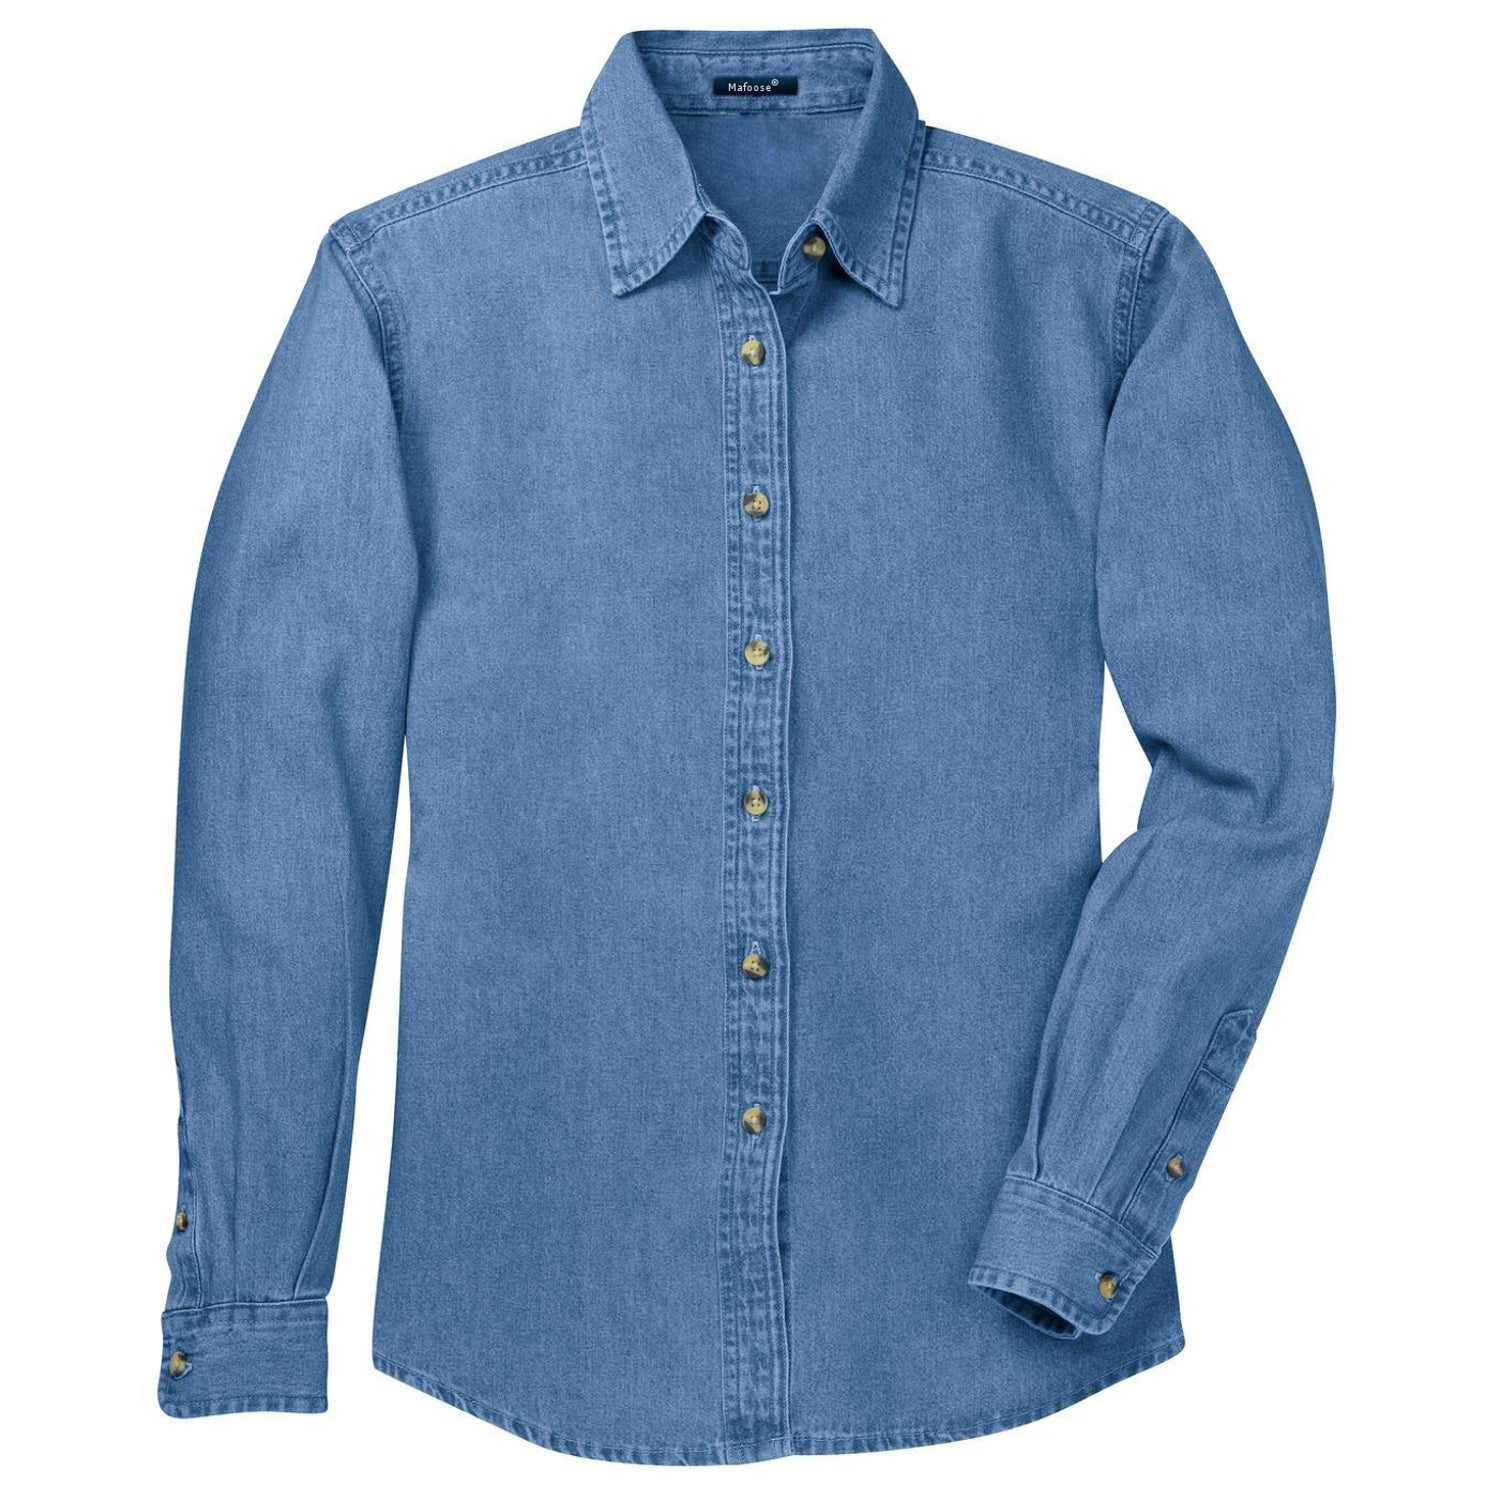 Mafoose Women's Long Sleeve Value Denim Shirt Faded Blue-Front